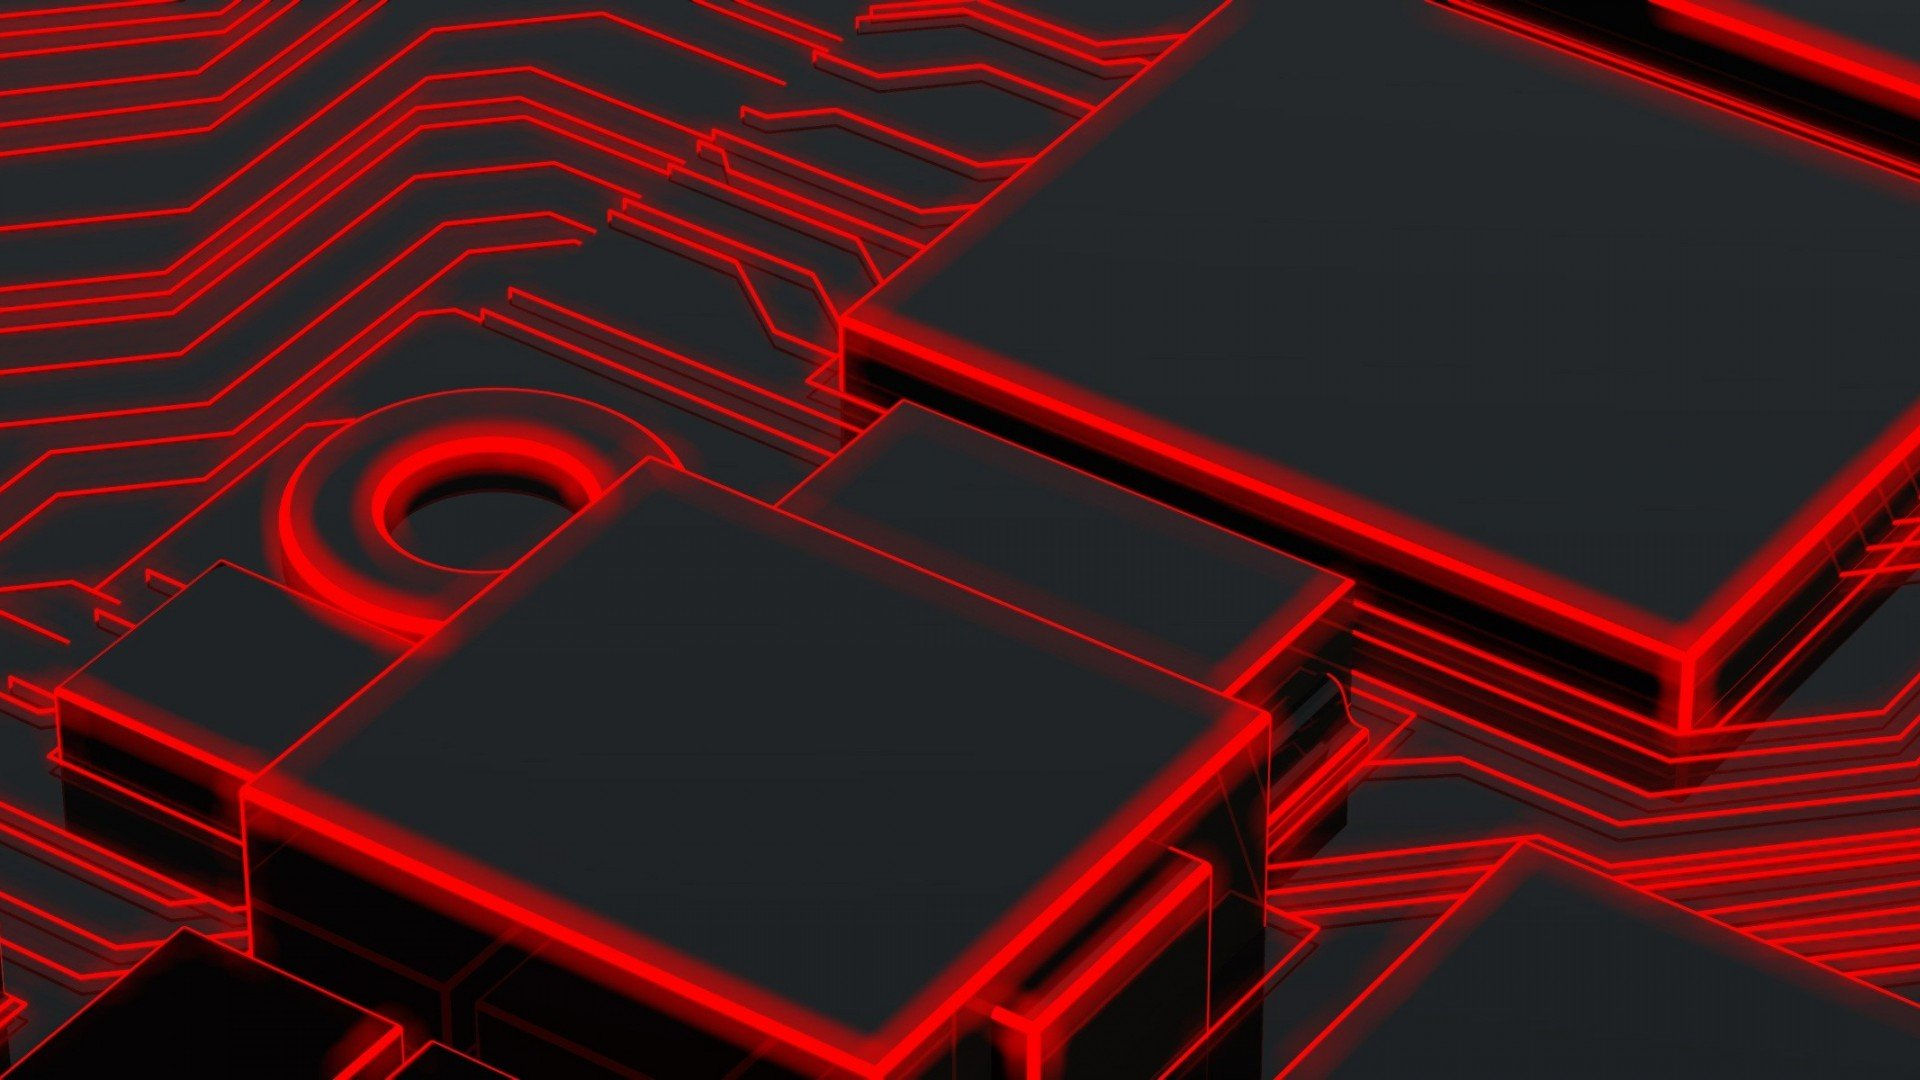 amd gaming wallpaper - wallpapersafari